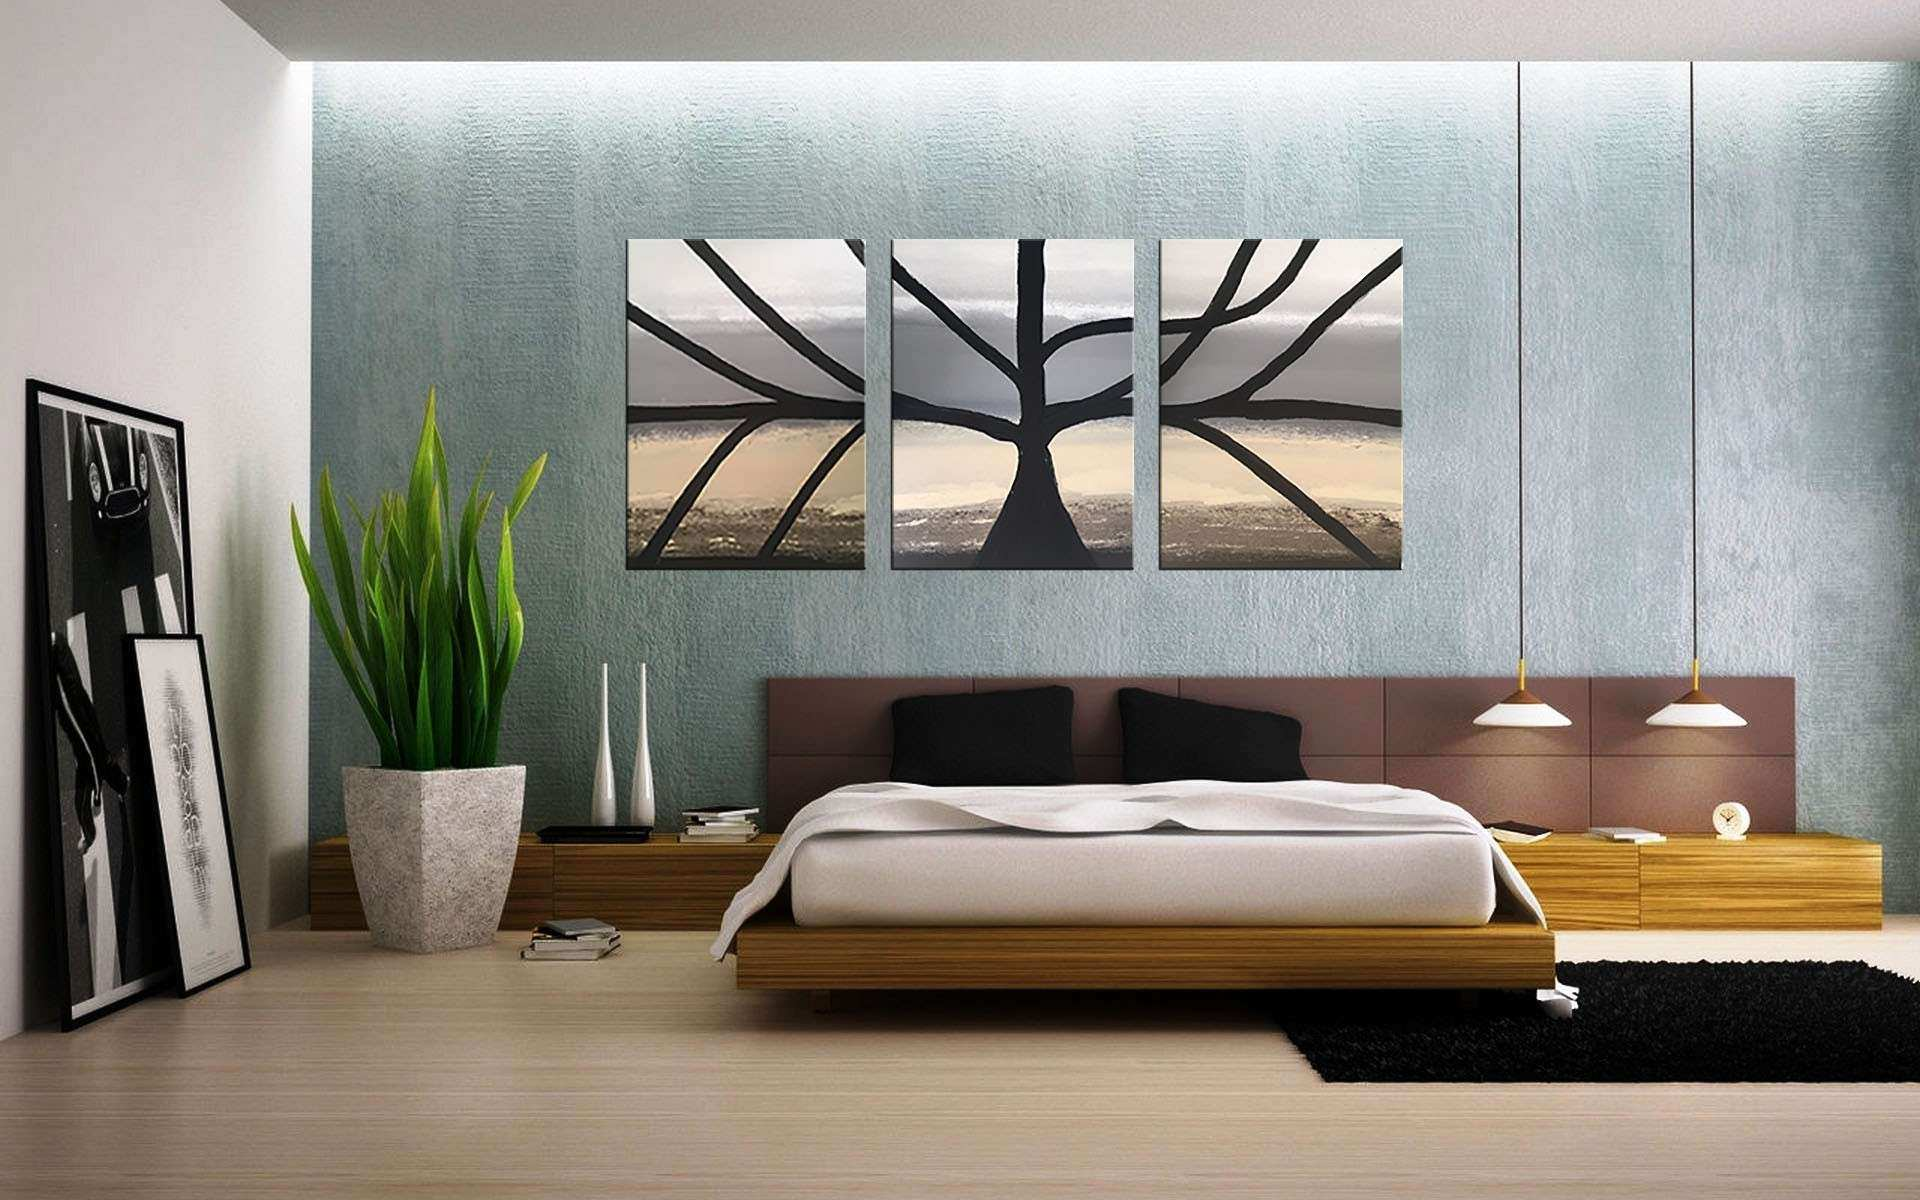 Bedroom Art For Sale line Designer Wall Art Decor Cheap Modern